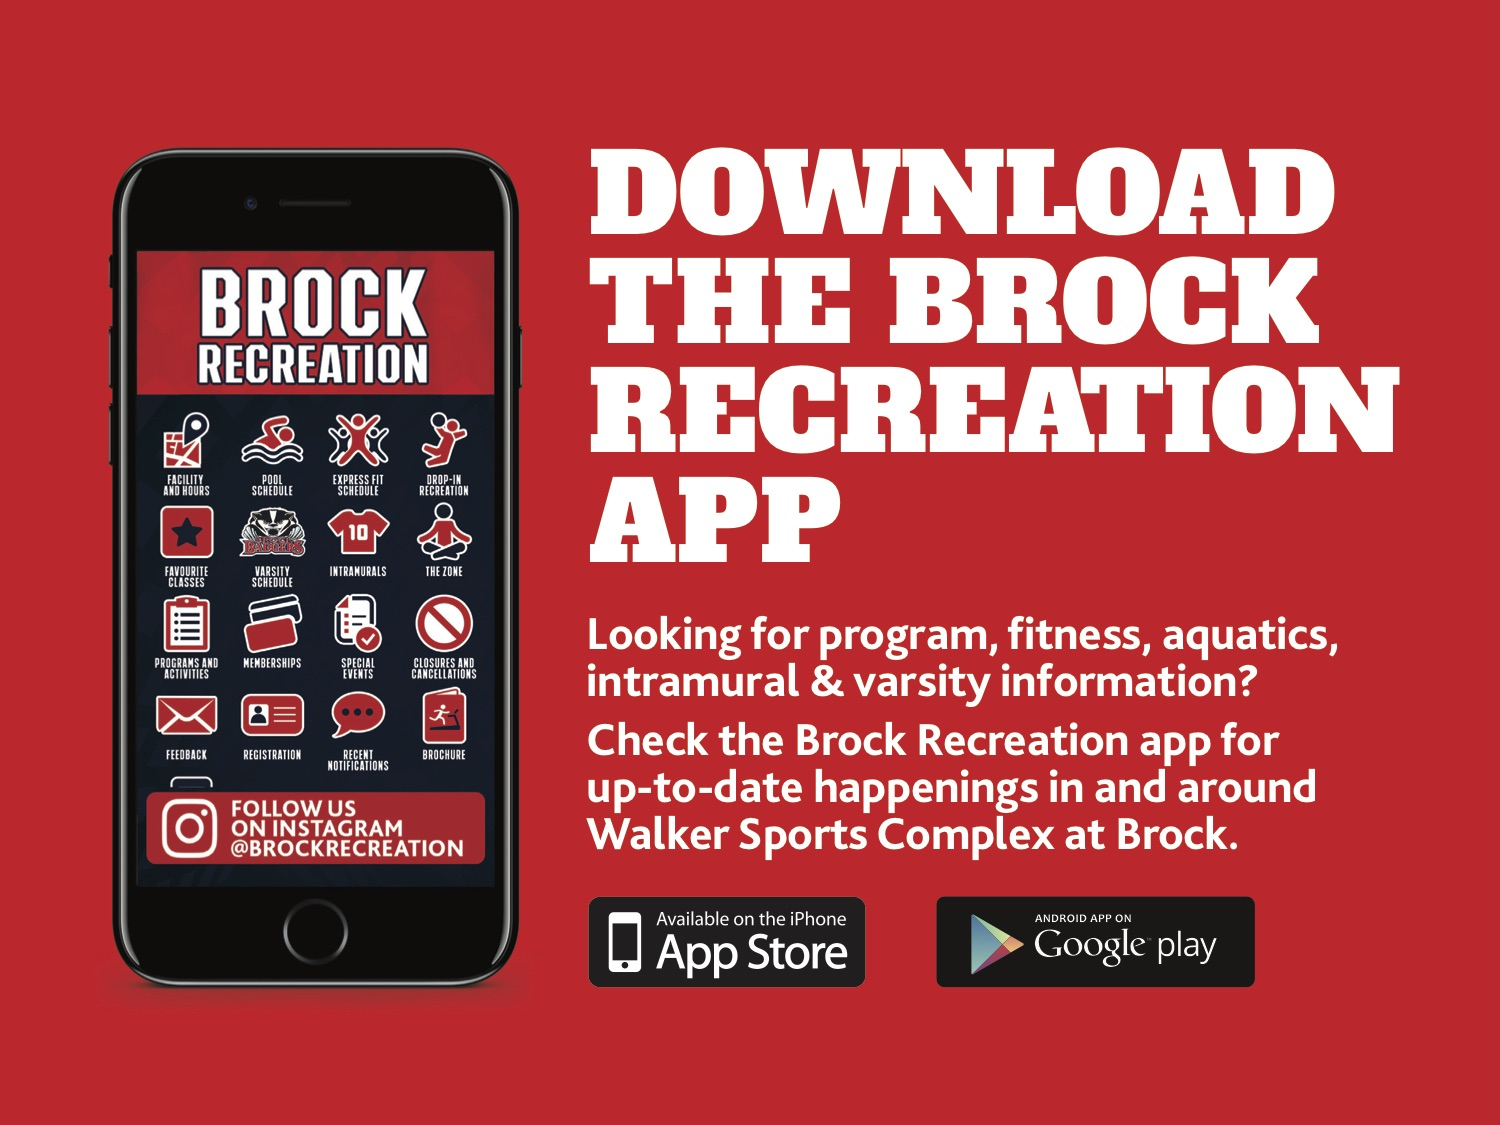 Download the Brock Recreation App